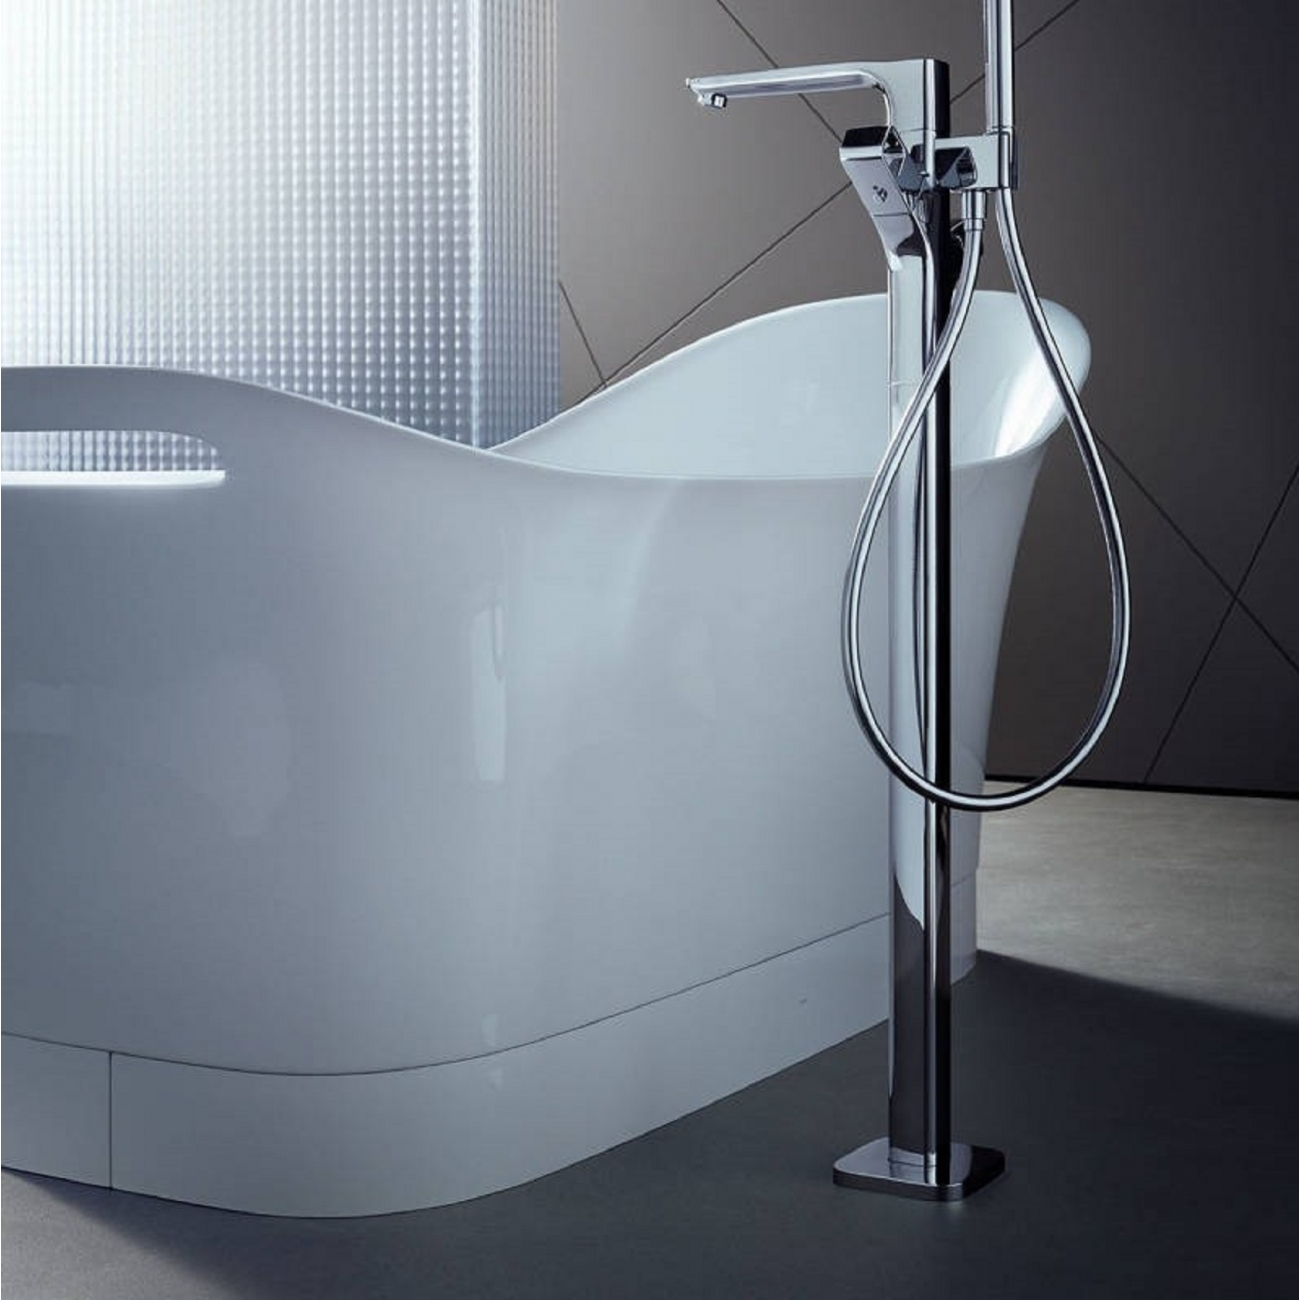 Enchanting Axor Hansgrohe Faucet Adornment - Faucet Collections ...